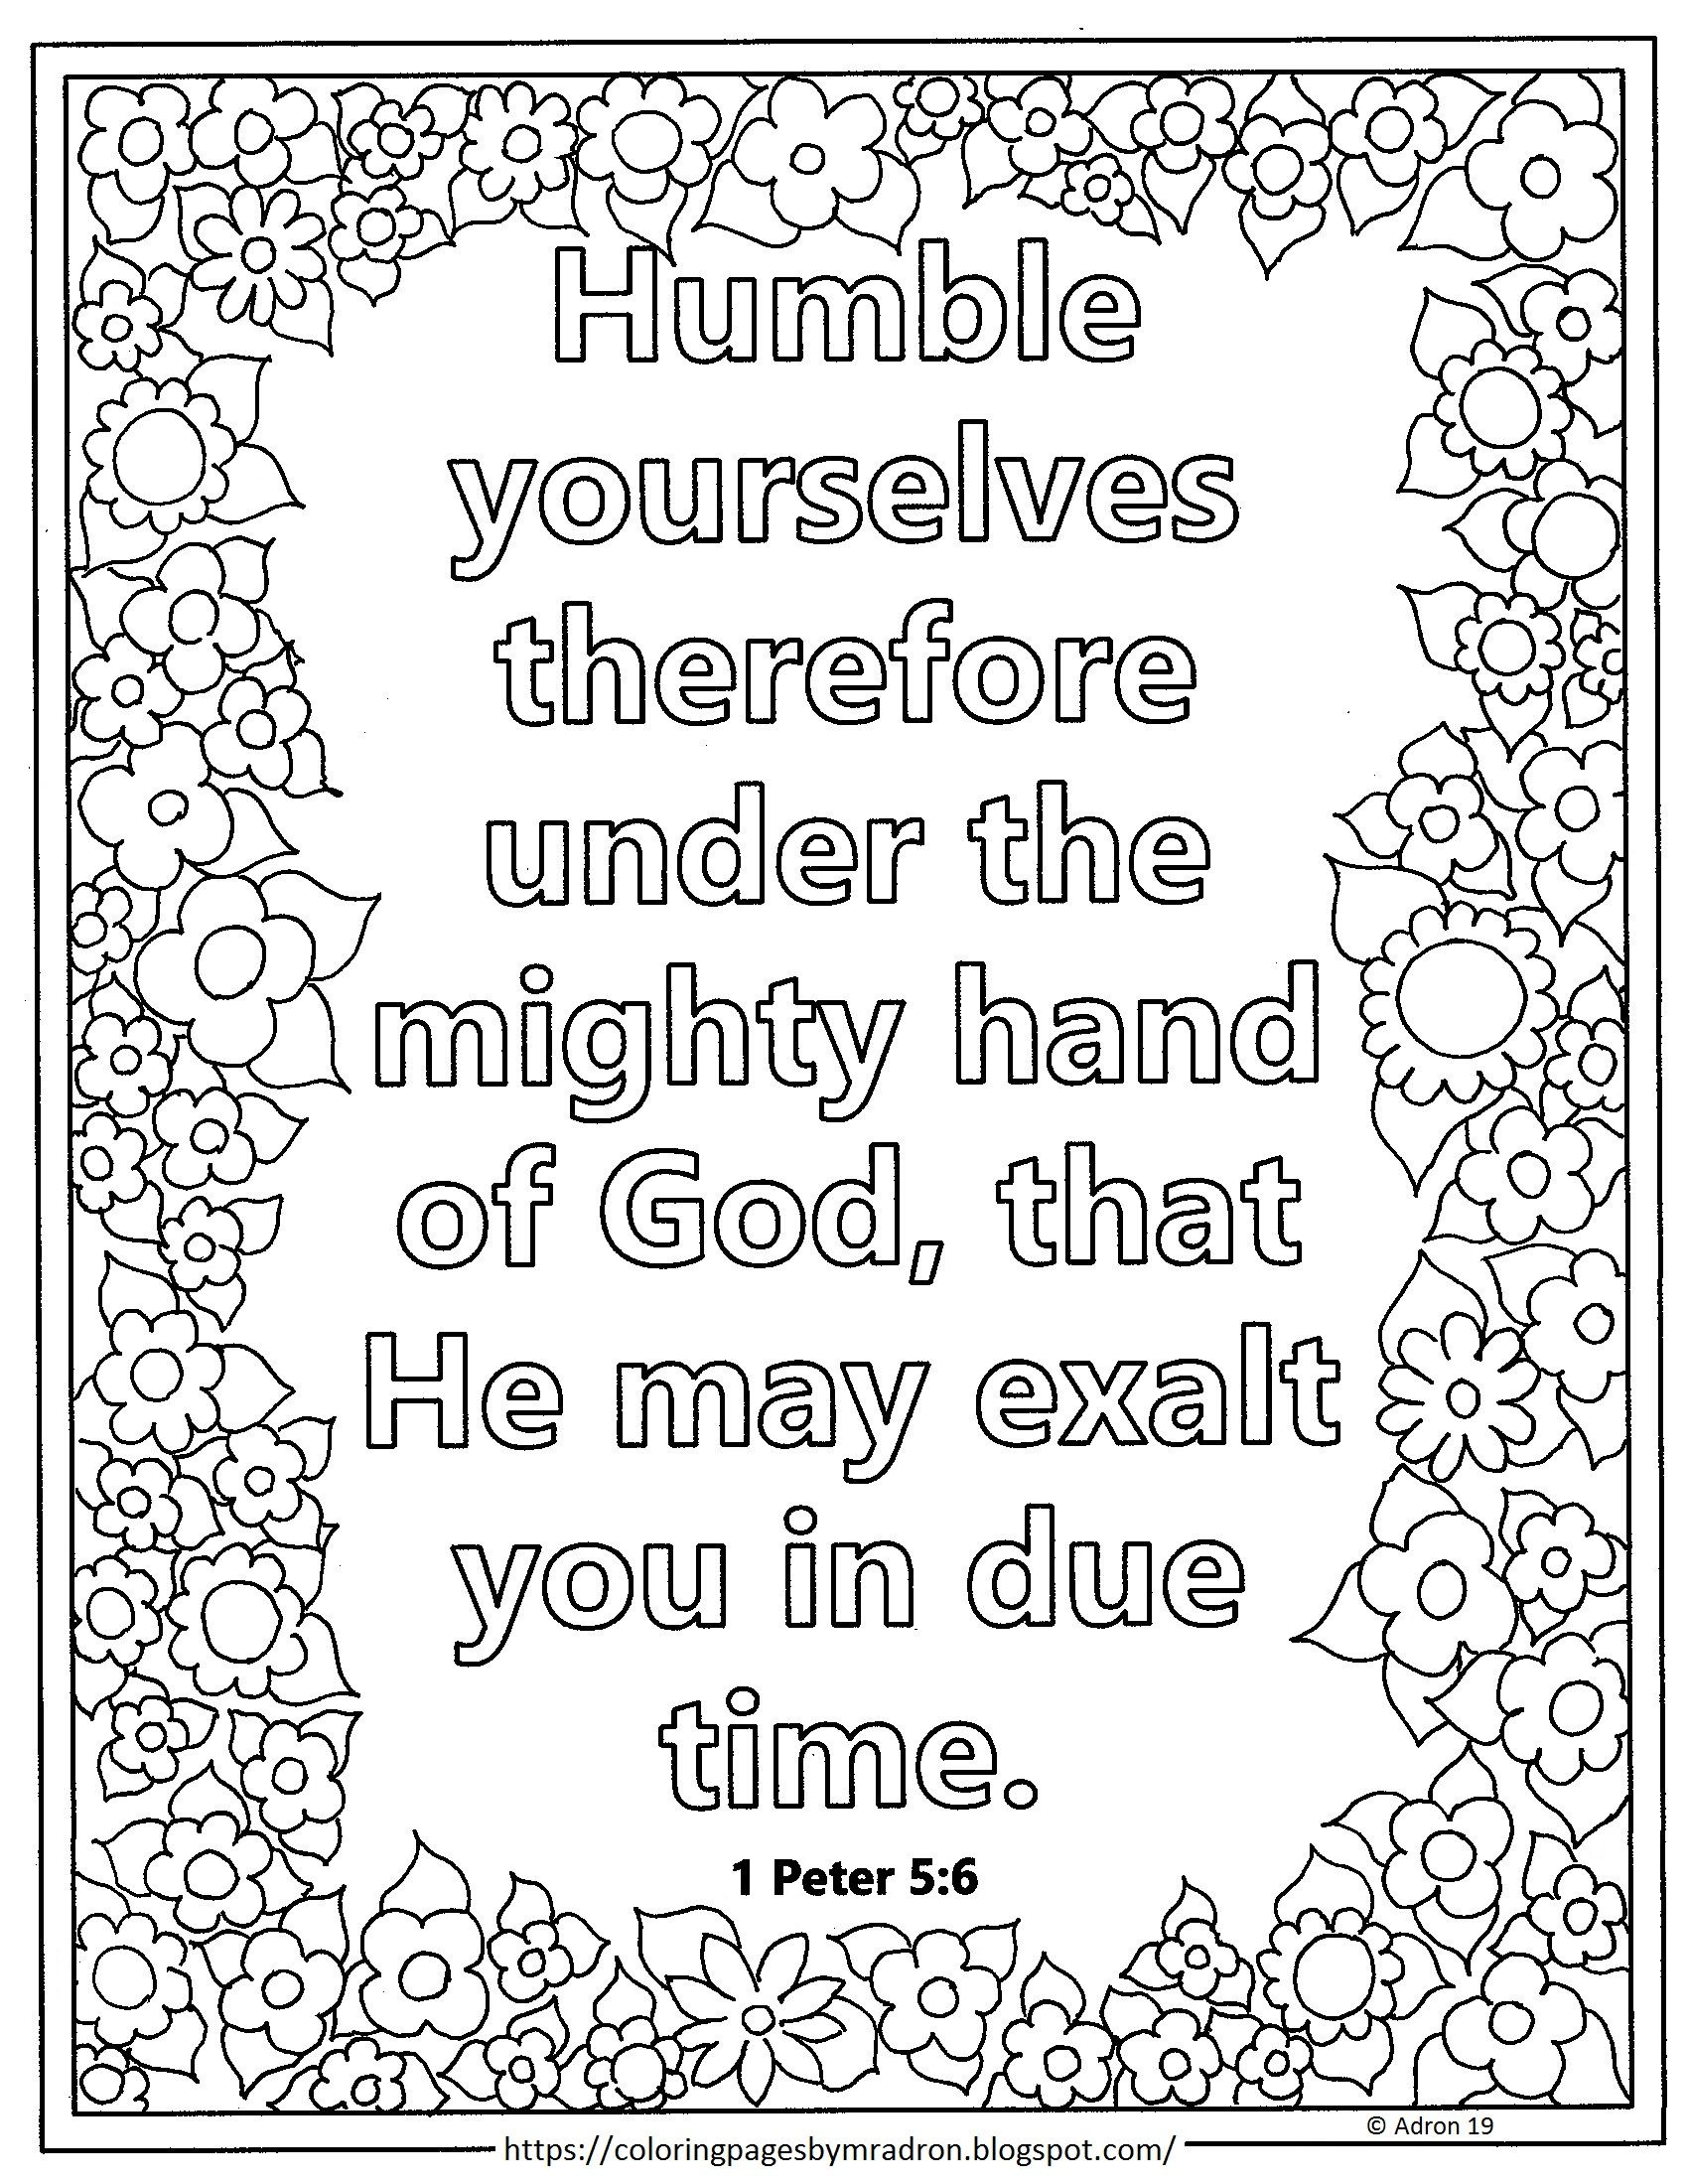 Lent Day 7 With 1 Peter 5 6 Print And Color Page Bible Coloring Pages Coloring Pages Bible Verse Coloring Page